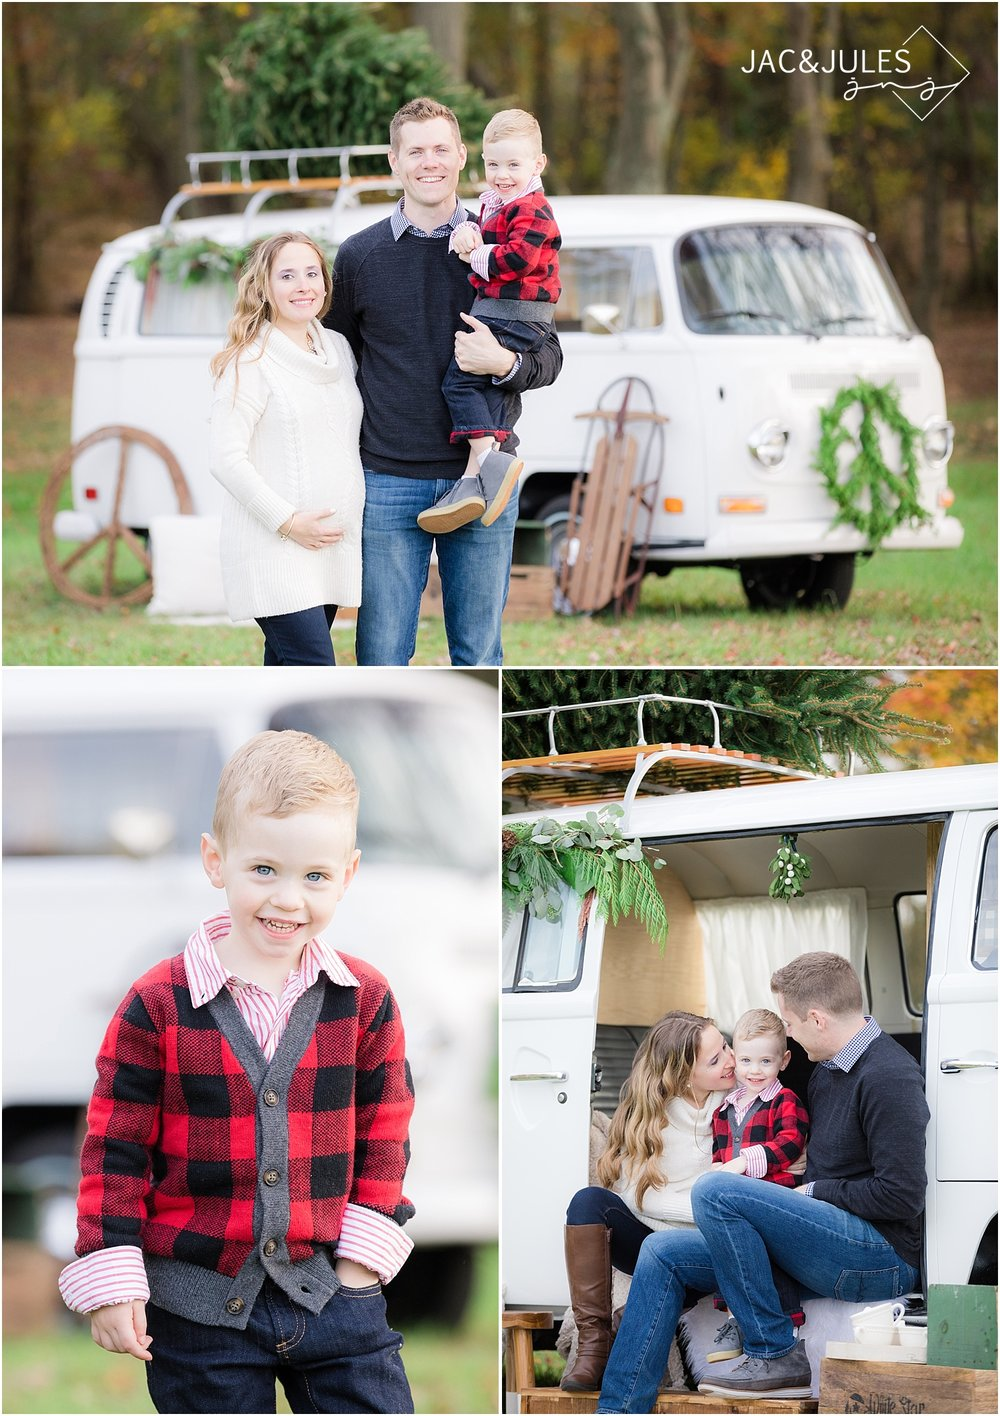 jacnjules photographs family christmas photo with a vintage vw bus in nj